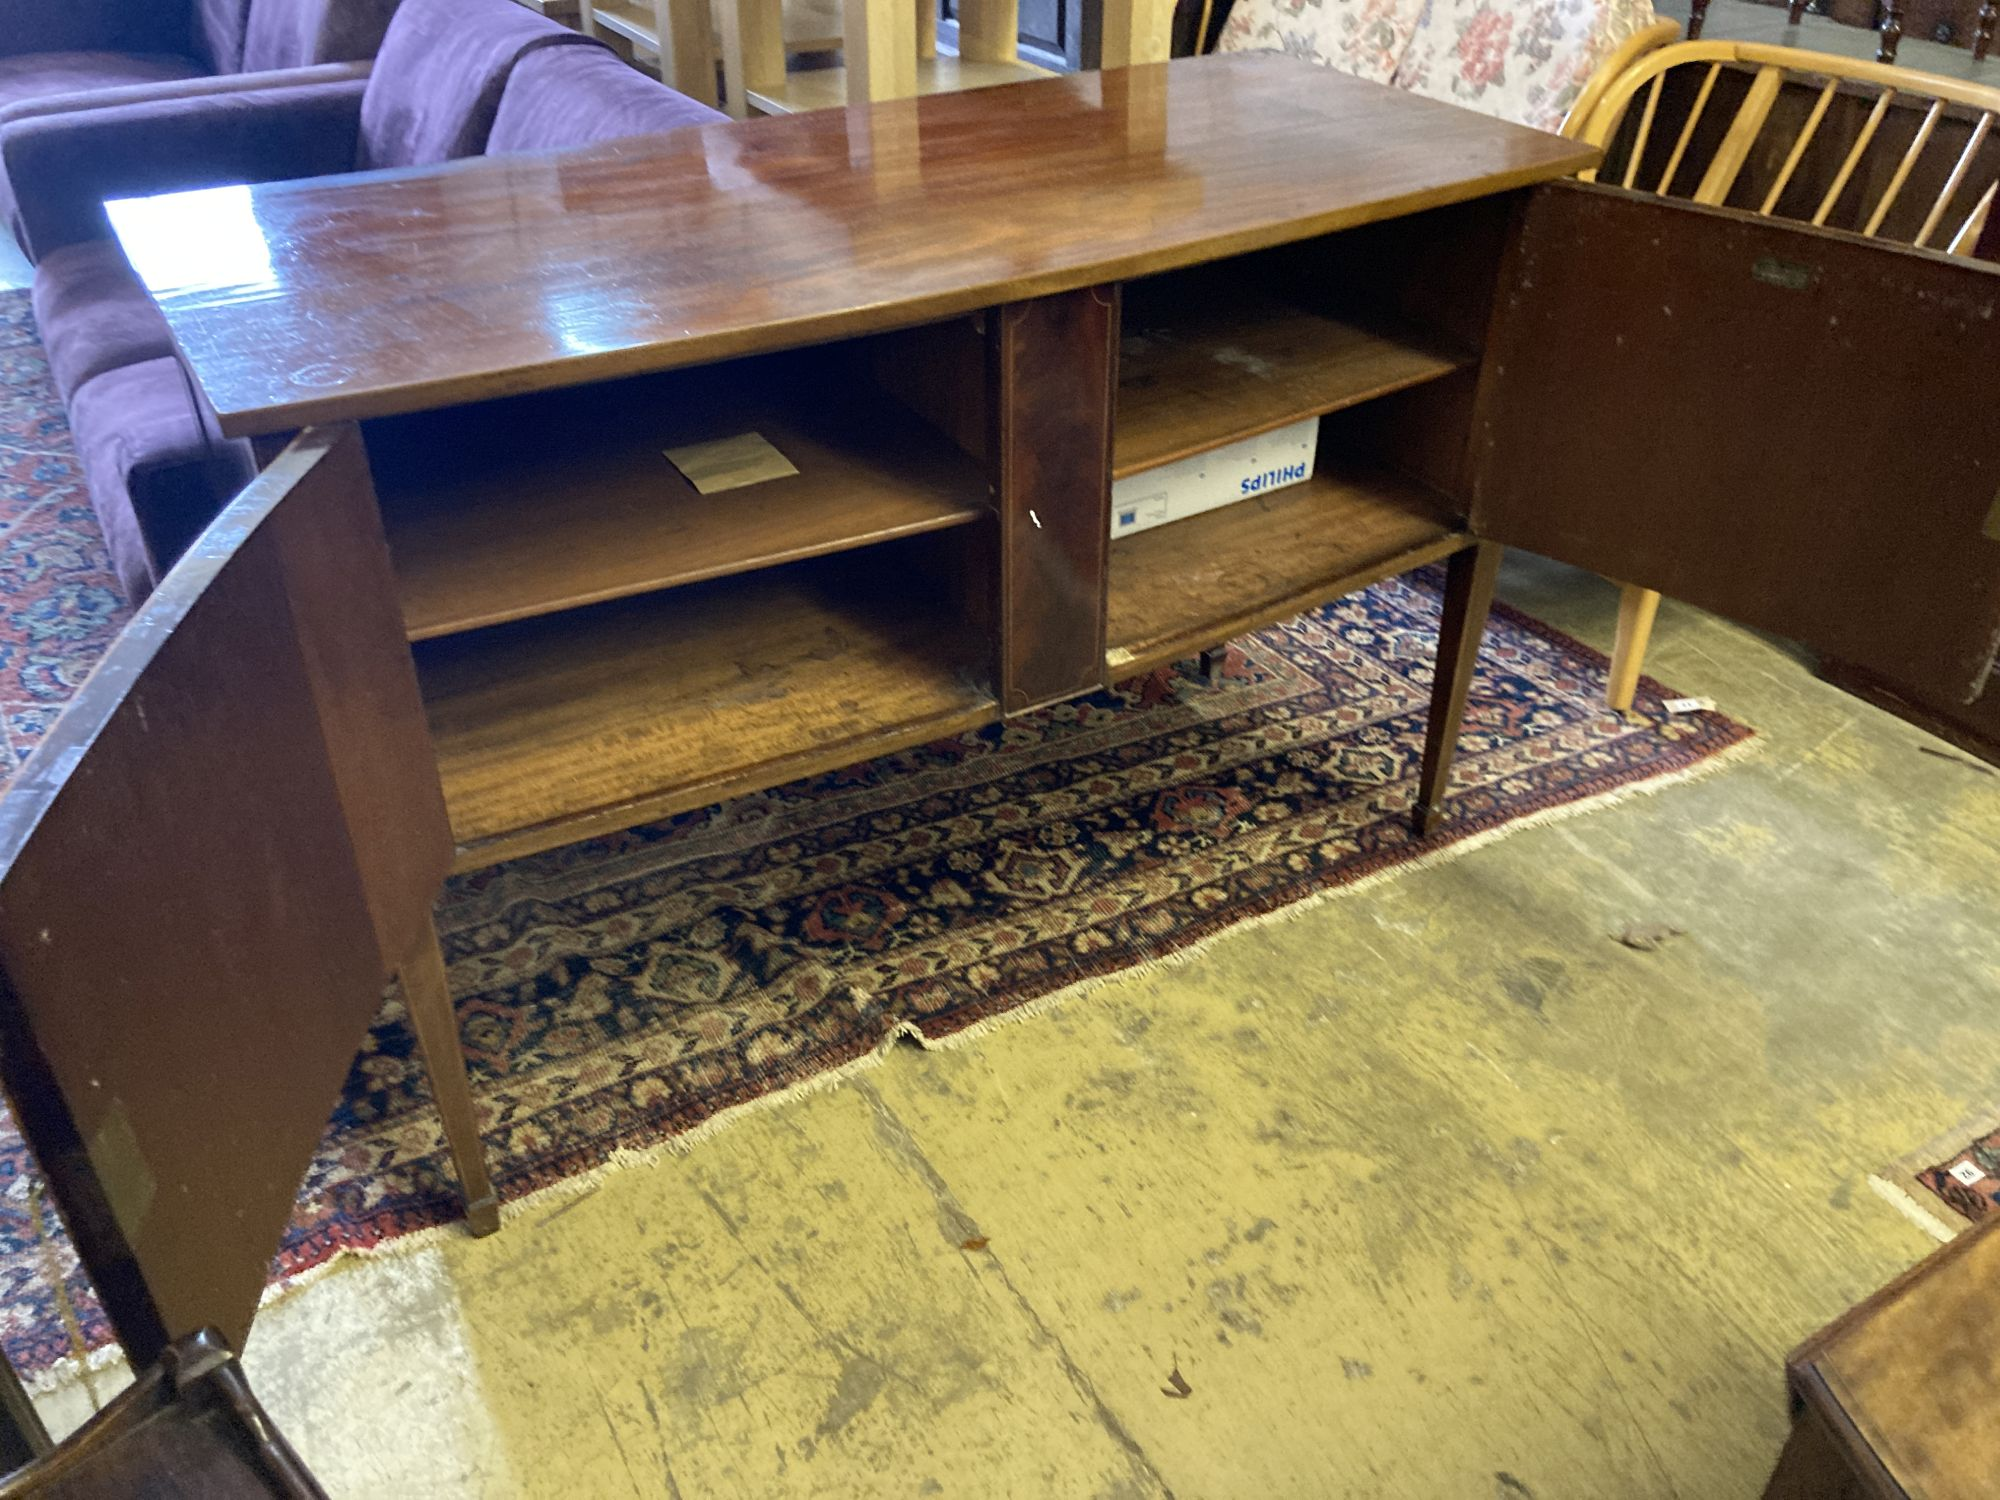 An Edwardian mahogany bow fronted sideboard, length 137cm, depth 60cm, height 91cm - Image 7 of 7